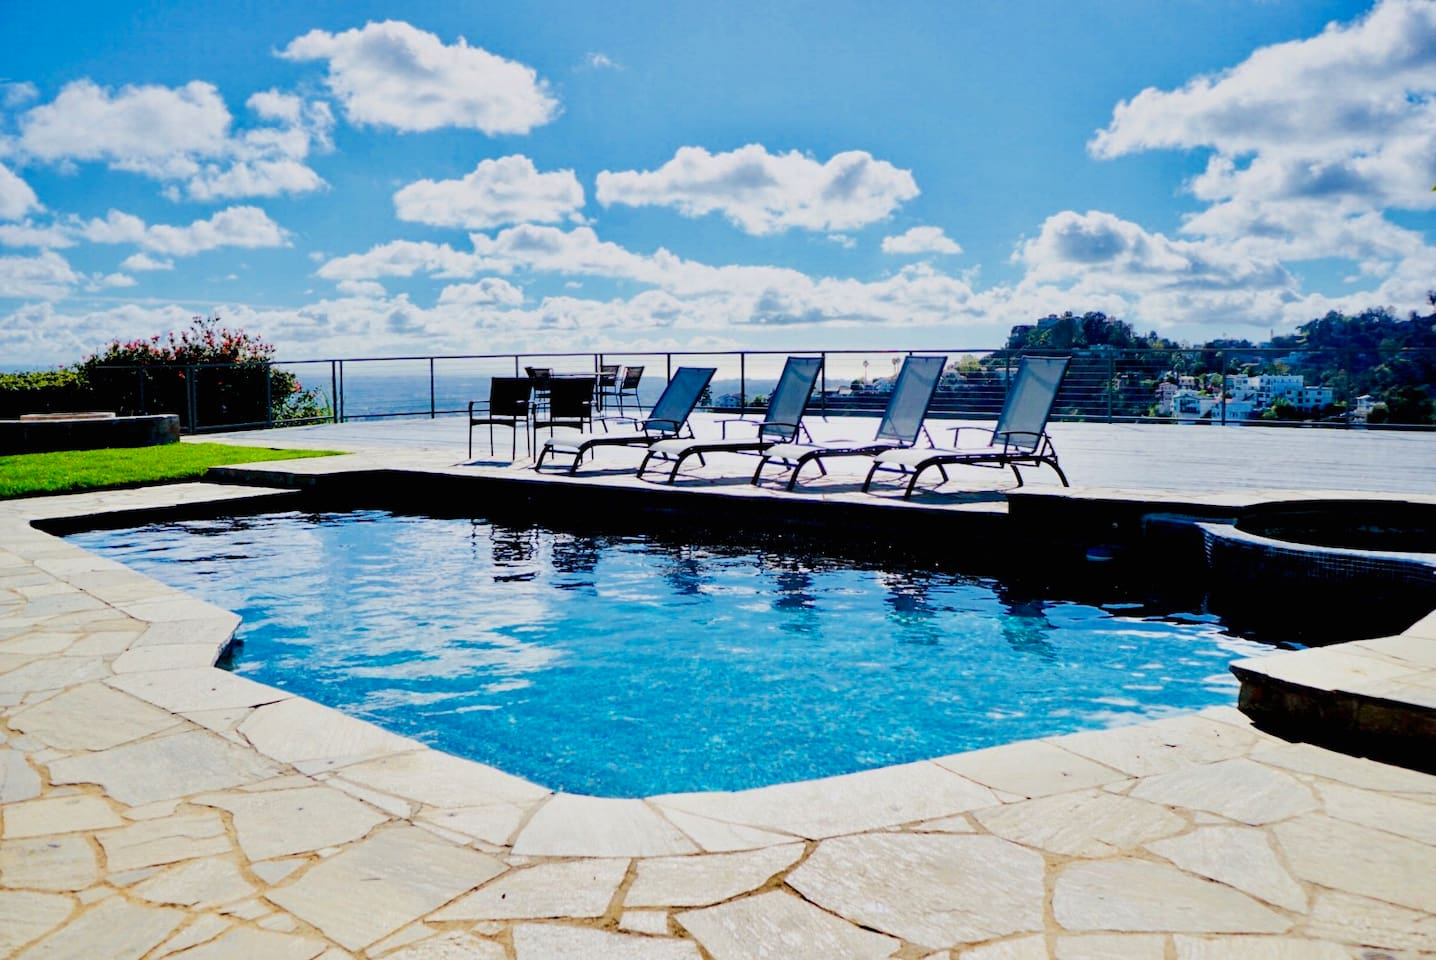 Enjoy our huge yard area, pool, and expansive deck with full 220-degree views of the Hollywood Hills and entire city of Los Angeles! PLEASE NOTE NO JACUZZI ACCESS.